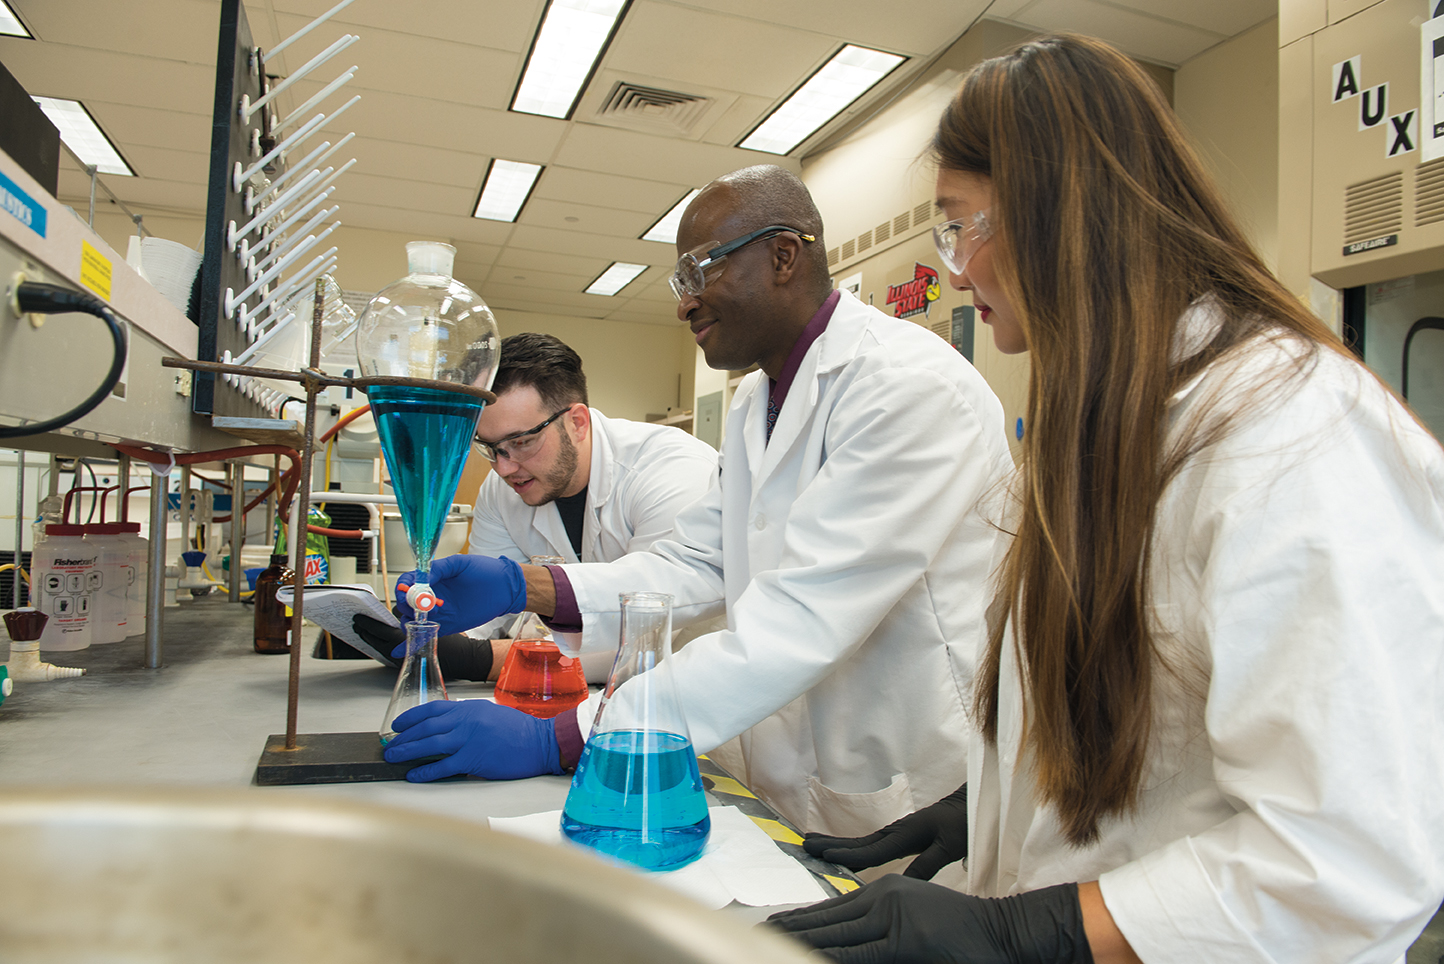 Professor Shawn Hitchcock (center) works in his research laboratory with students Stephanie Waggoner and Eric Jacobsen.